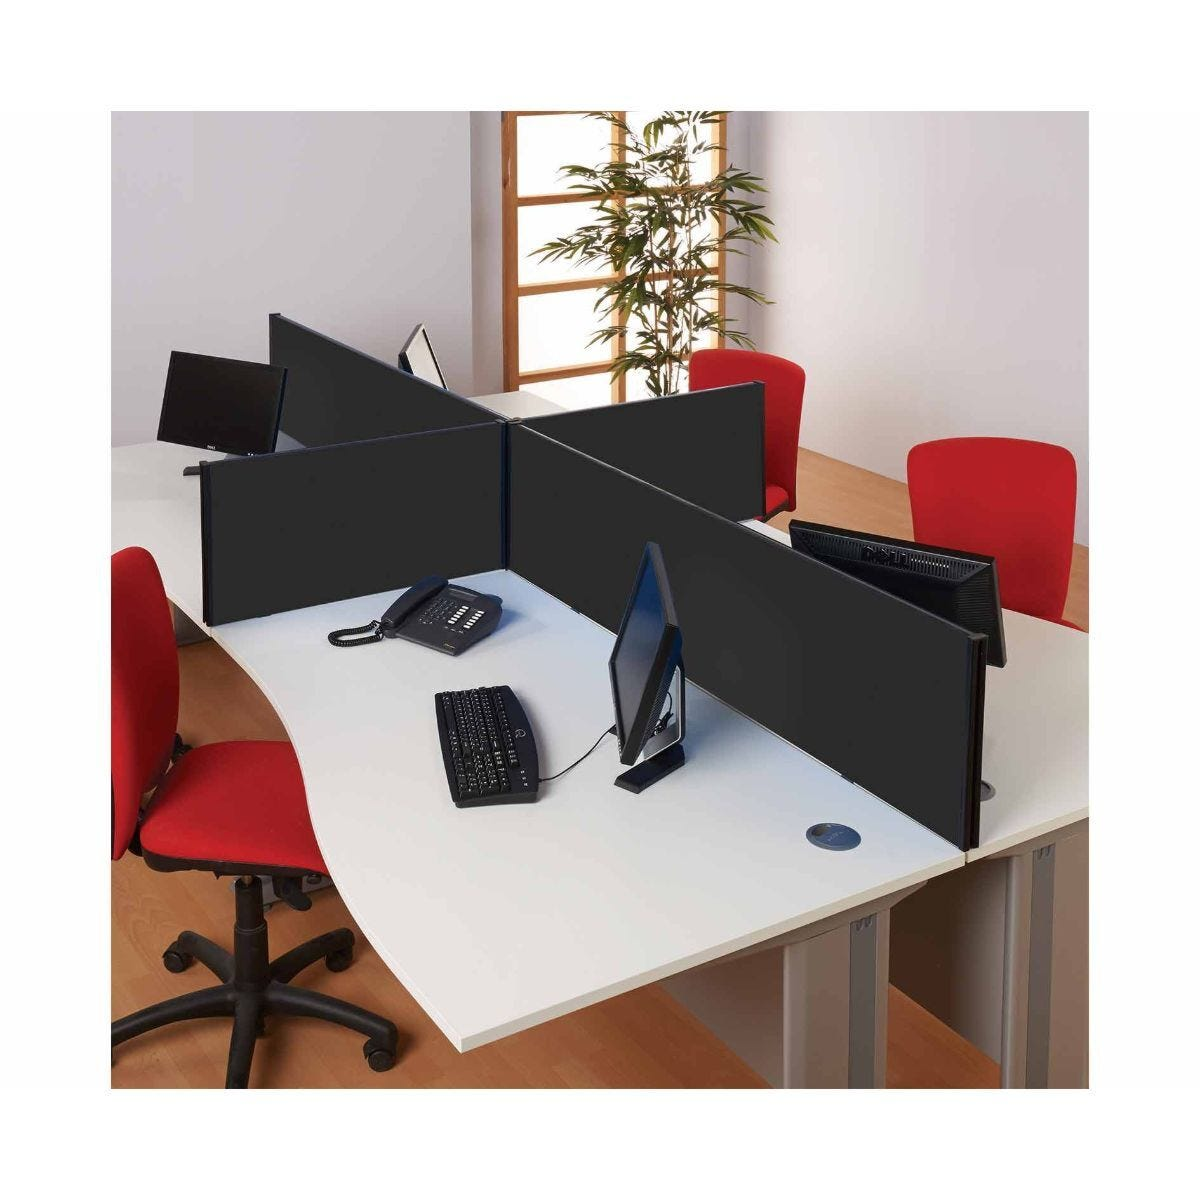 Metroplan BusyScreen Desk Mounted Partition Screen 400 x 1600mm Black